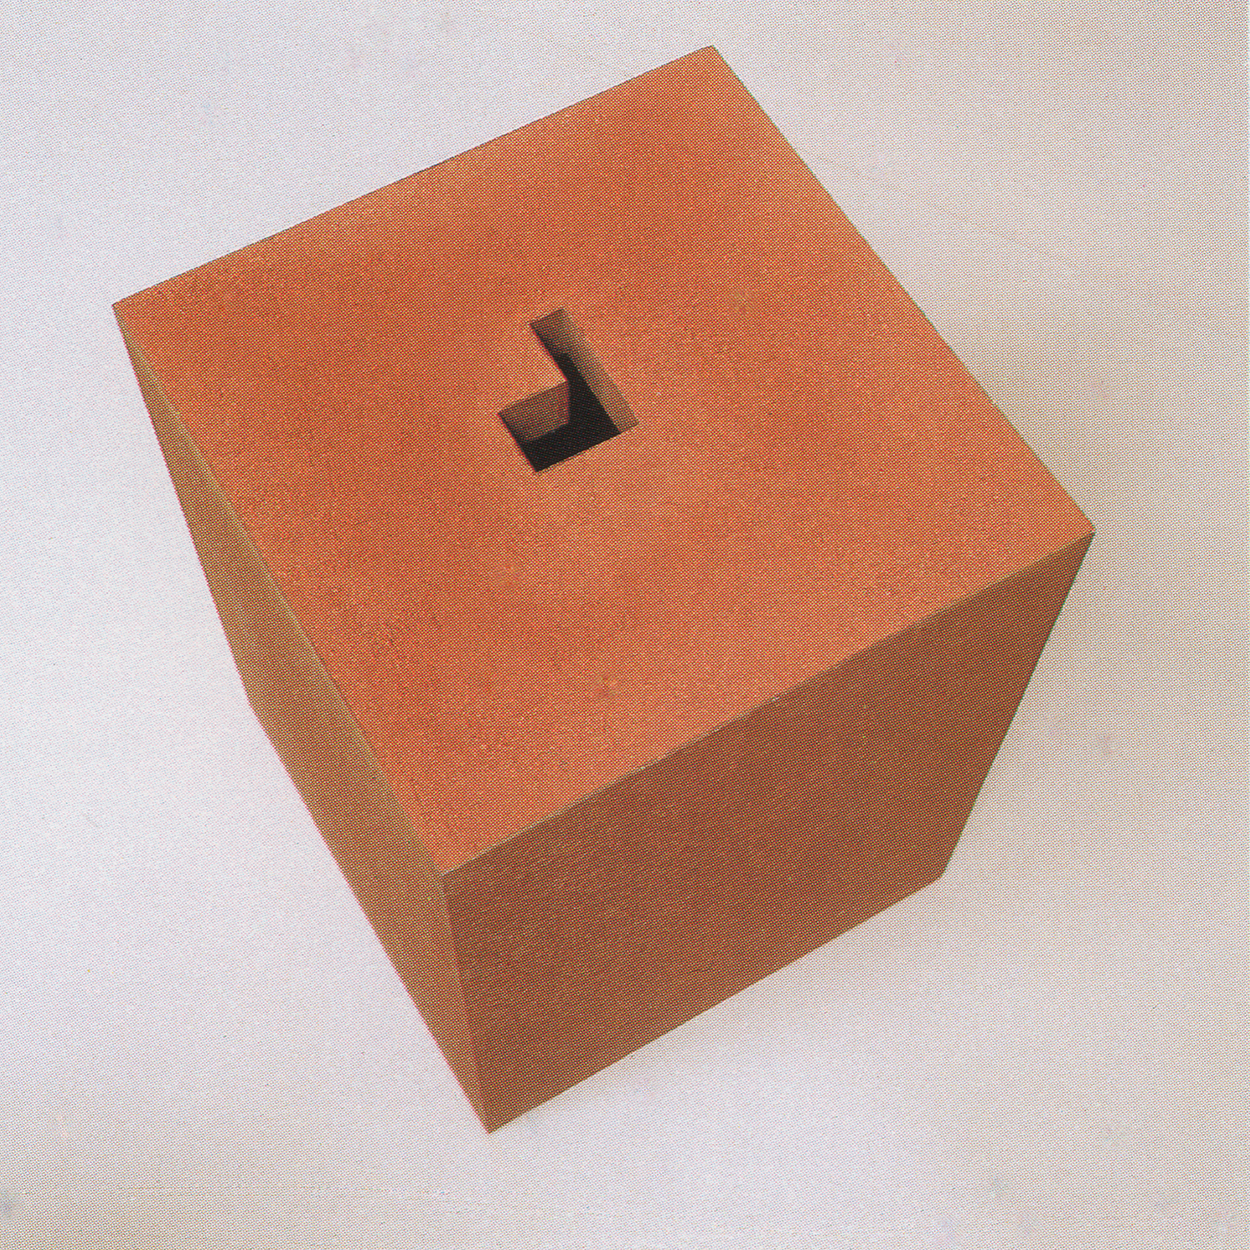 Vessel|iron and red sand|54 x 40 x 40 cm|1992